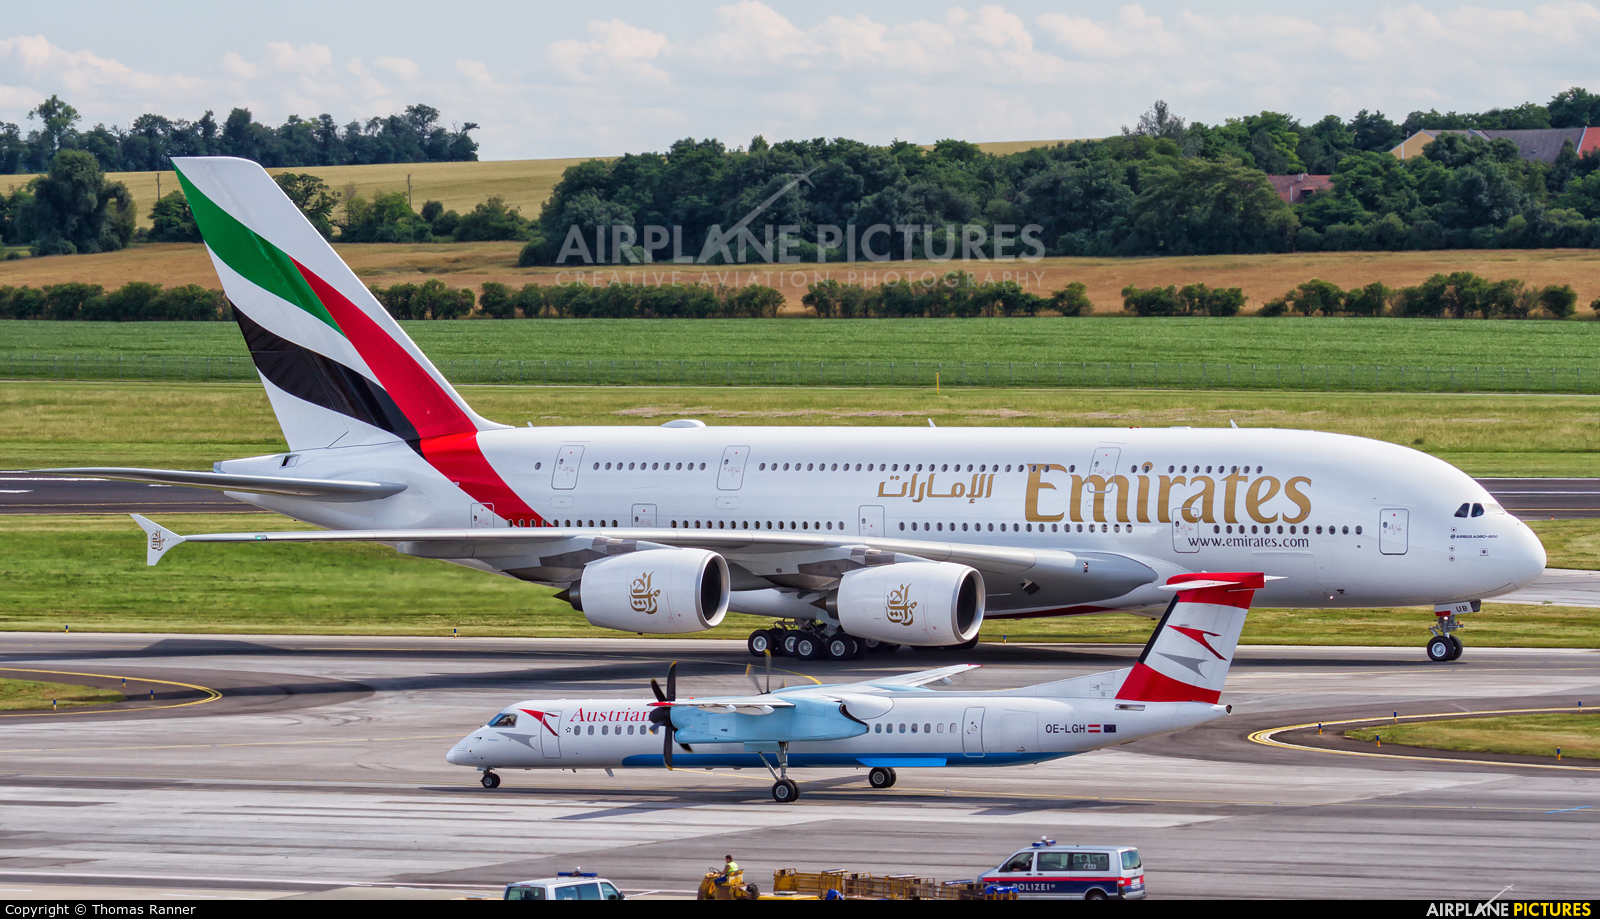 Emirates Airlines A6-EUB aircraft at Vienna - Schwechat